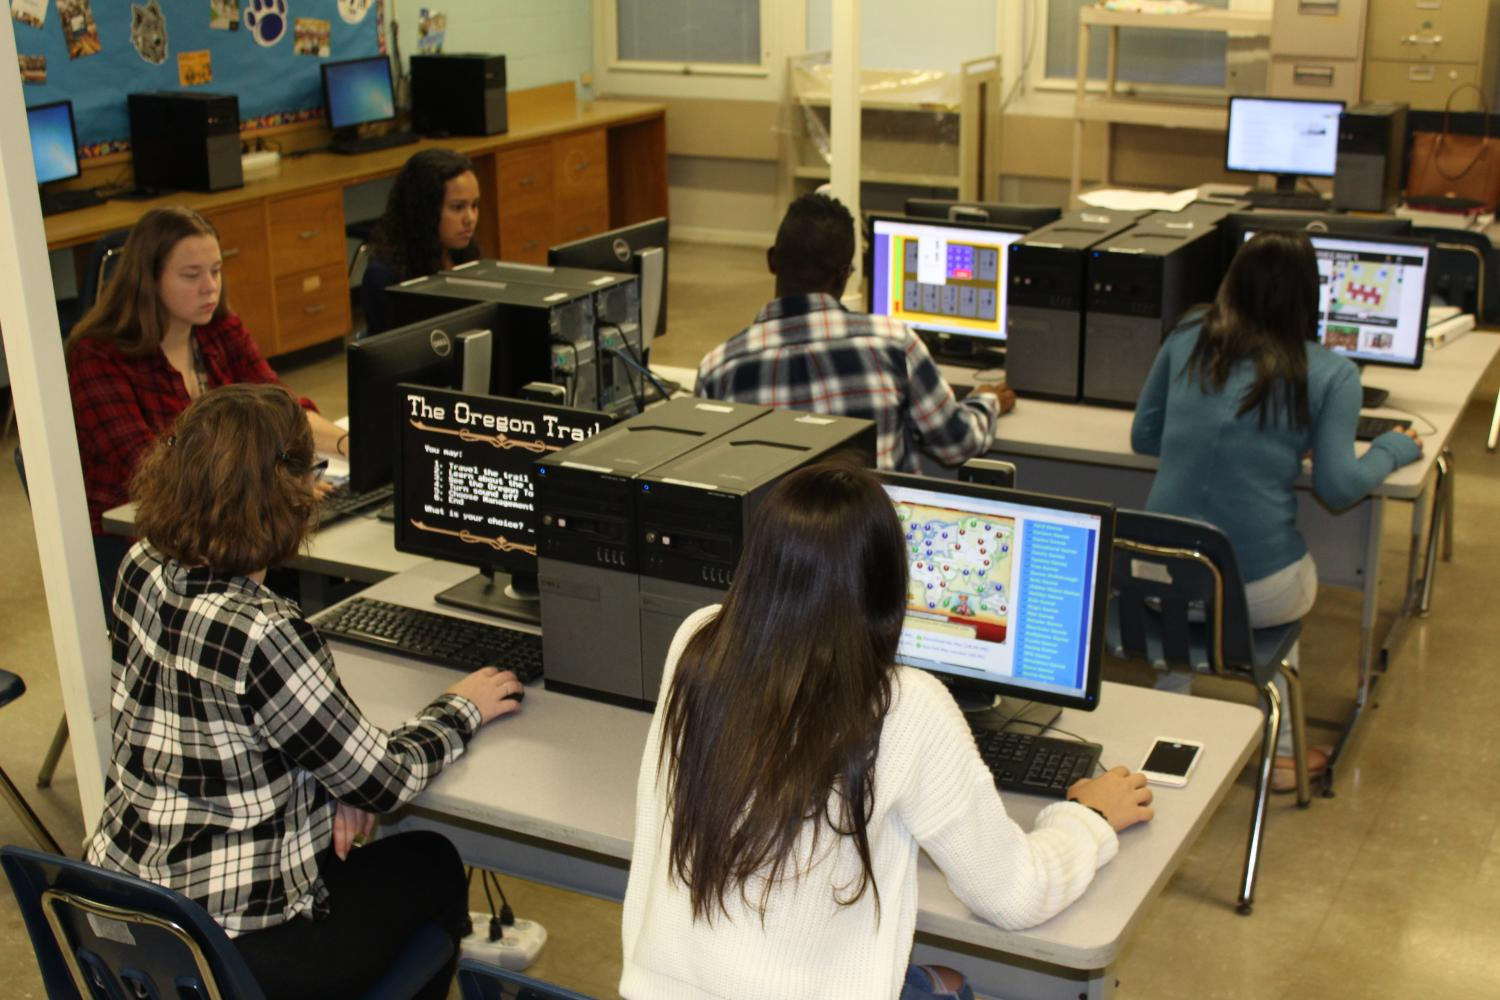 Captivated by interactive educational games, students huddle over their computer excited to learn.